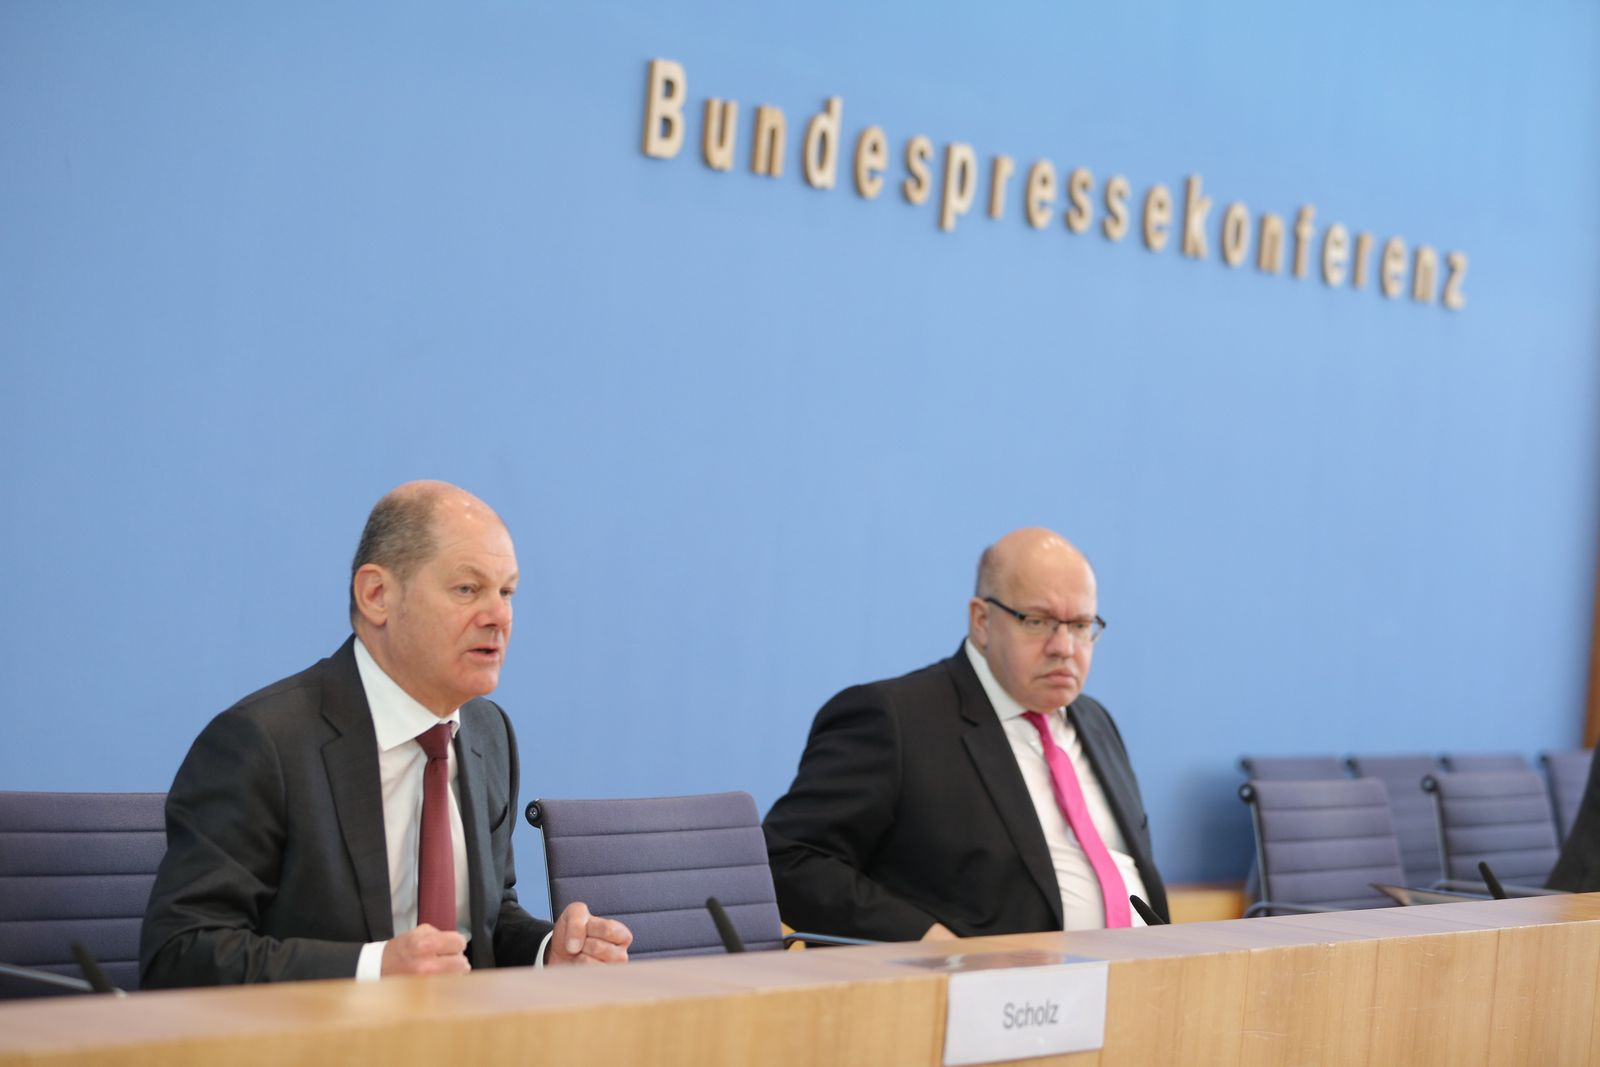 German government announces Supplementary Budget Plan 2020, Berlin, Germany - 23 Mar 2020